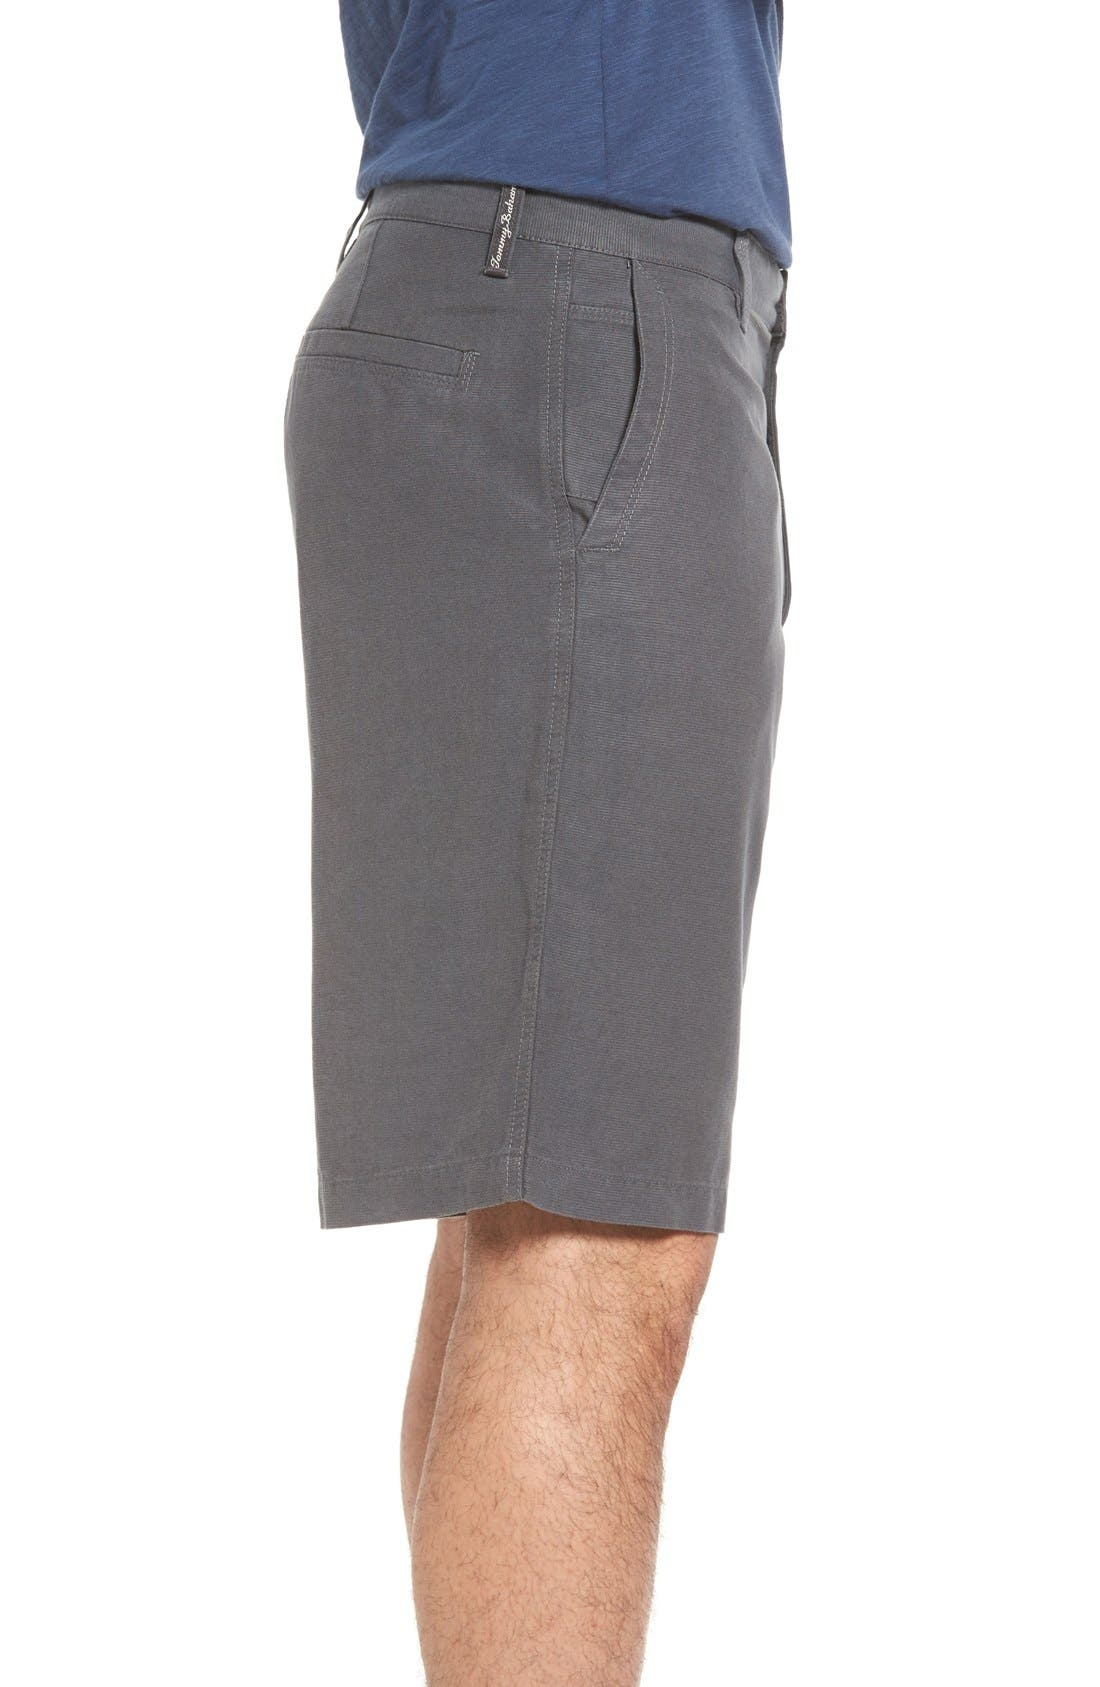 Alternate Image 3  - Tommy Bahama 'Surfclub' Shorts